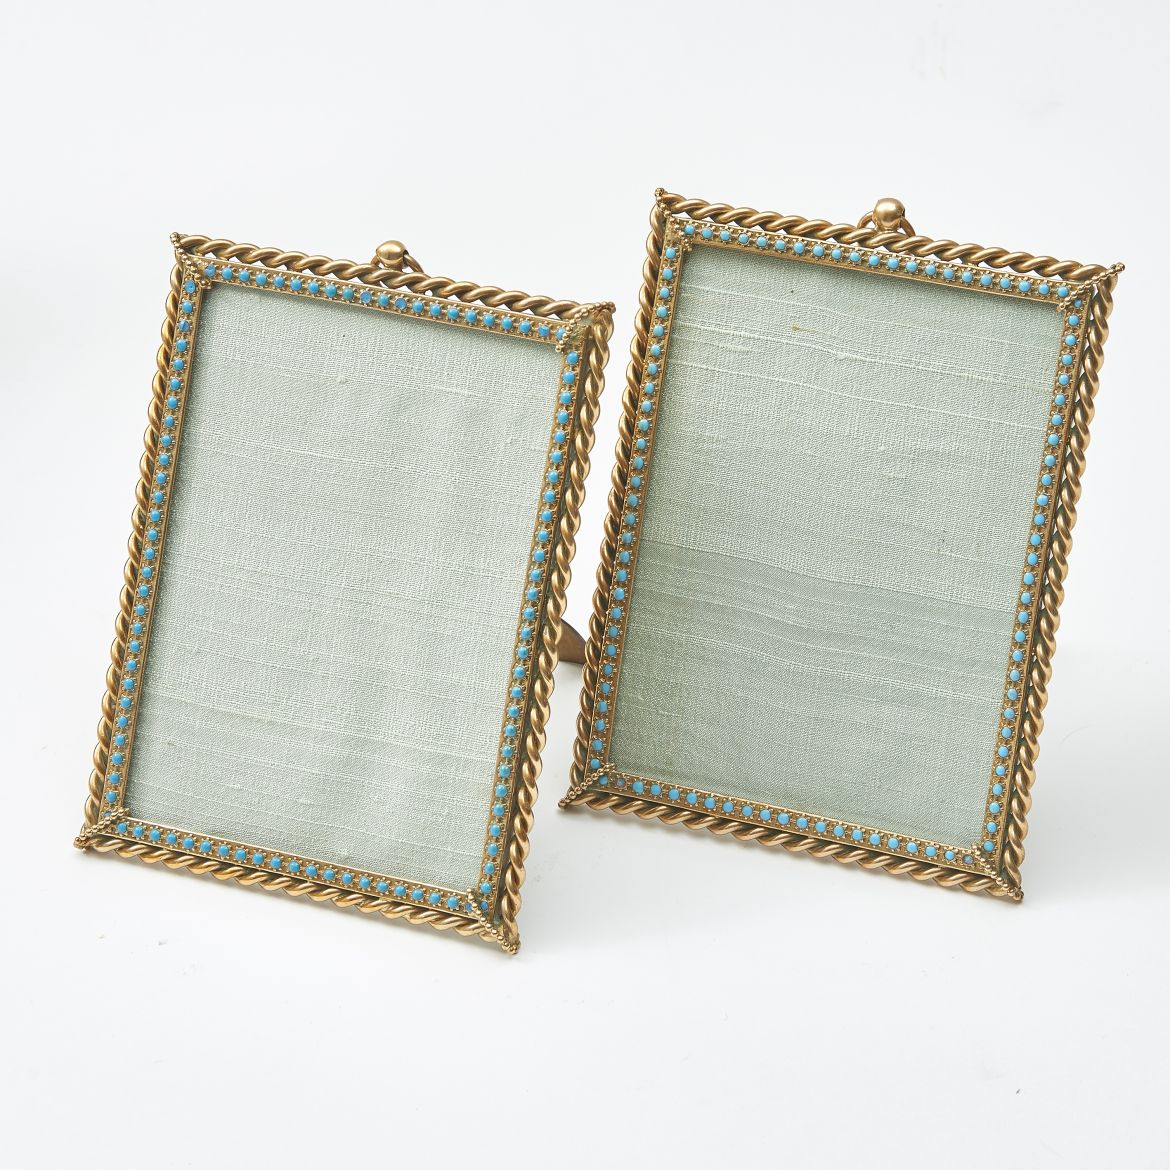 Pair Turquoise Inlaid Frames